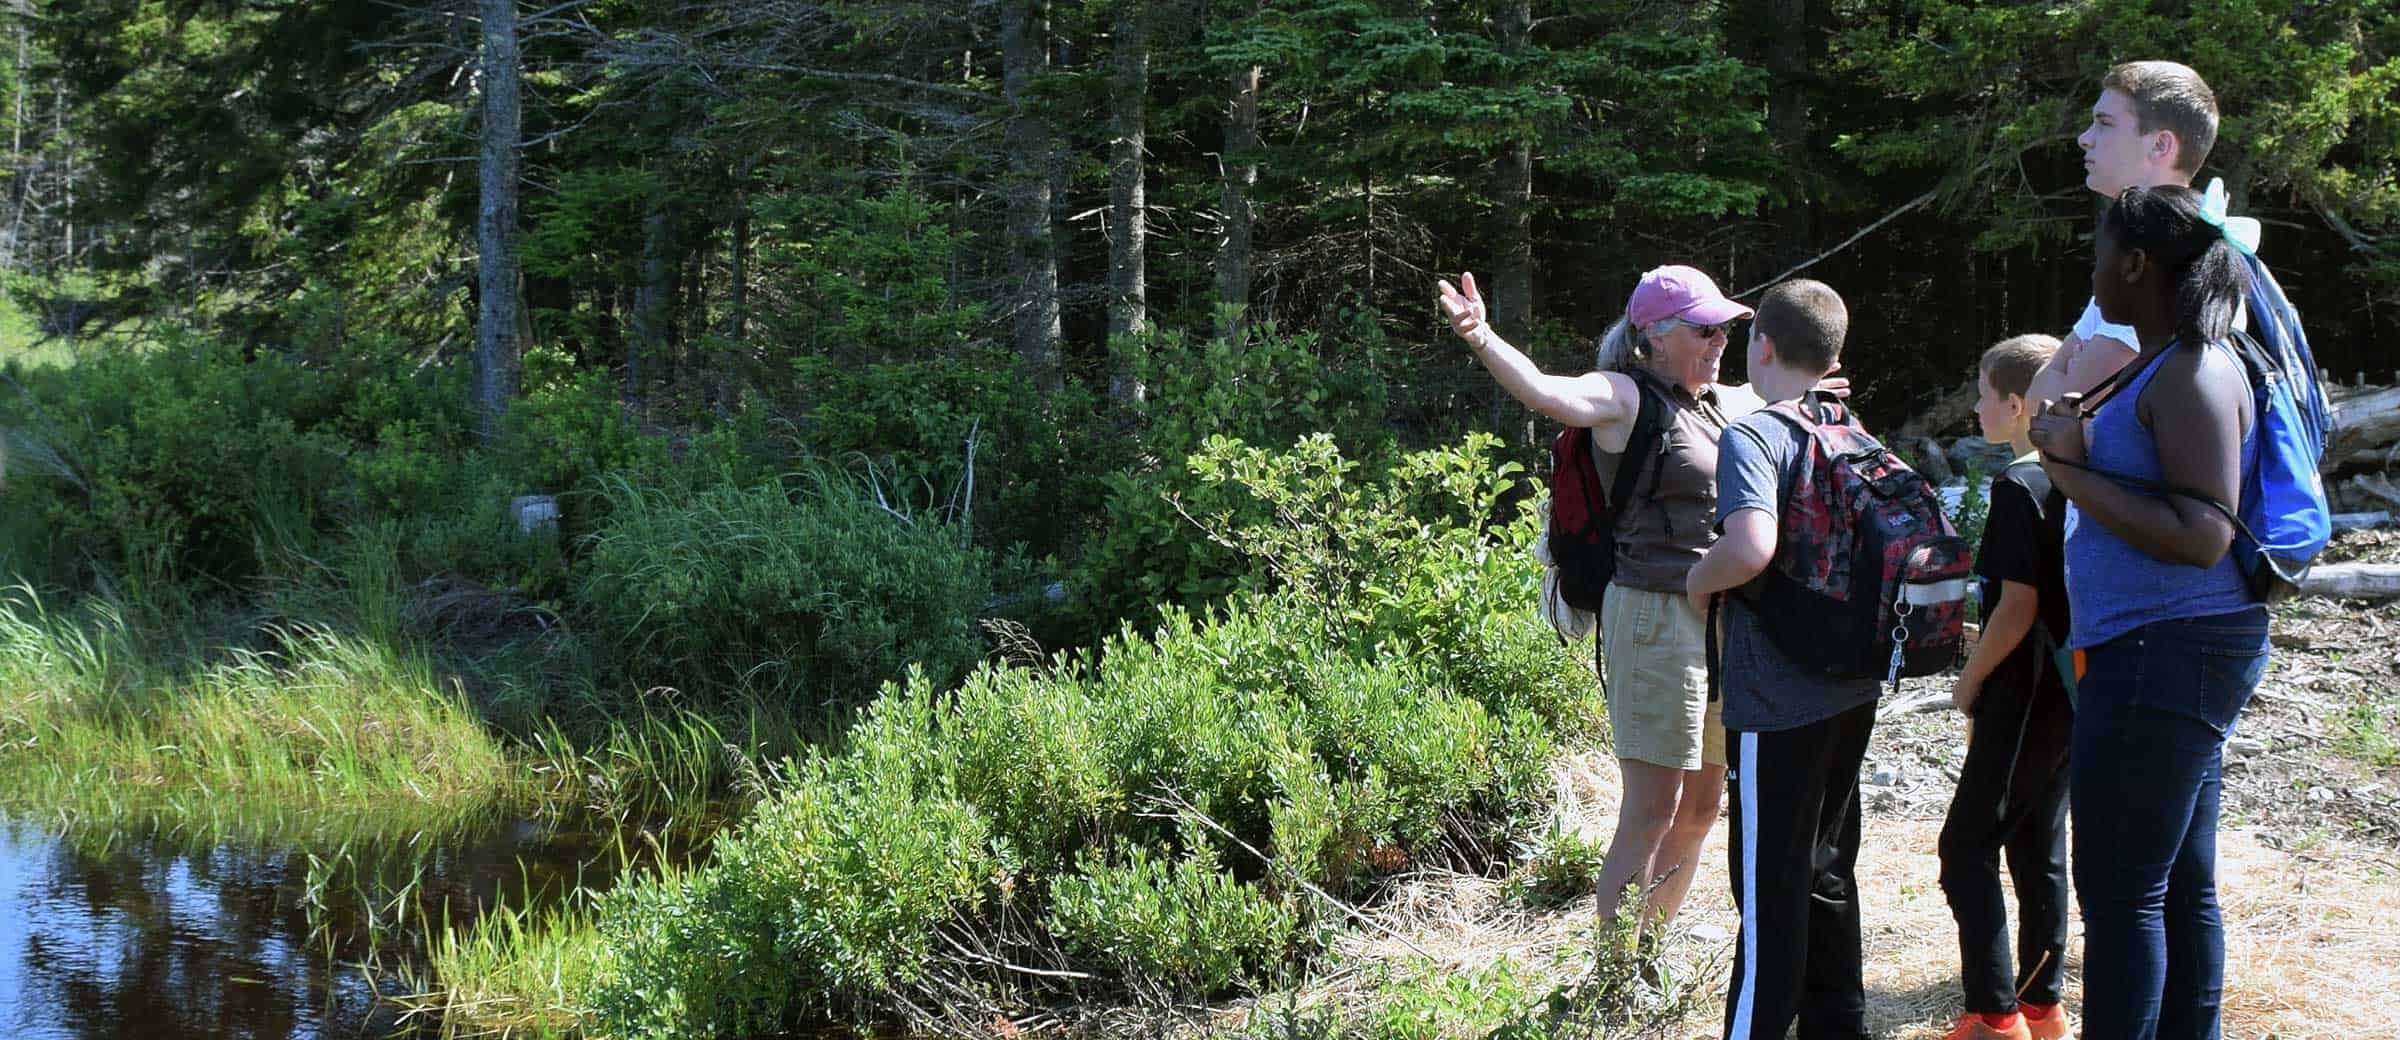 MCHT land steward Deirdre Whitehead brings local students to Long Point Preserve in Machiasport